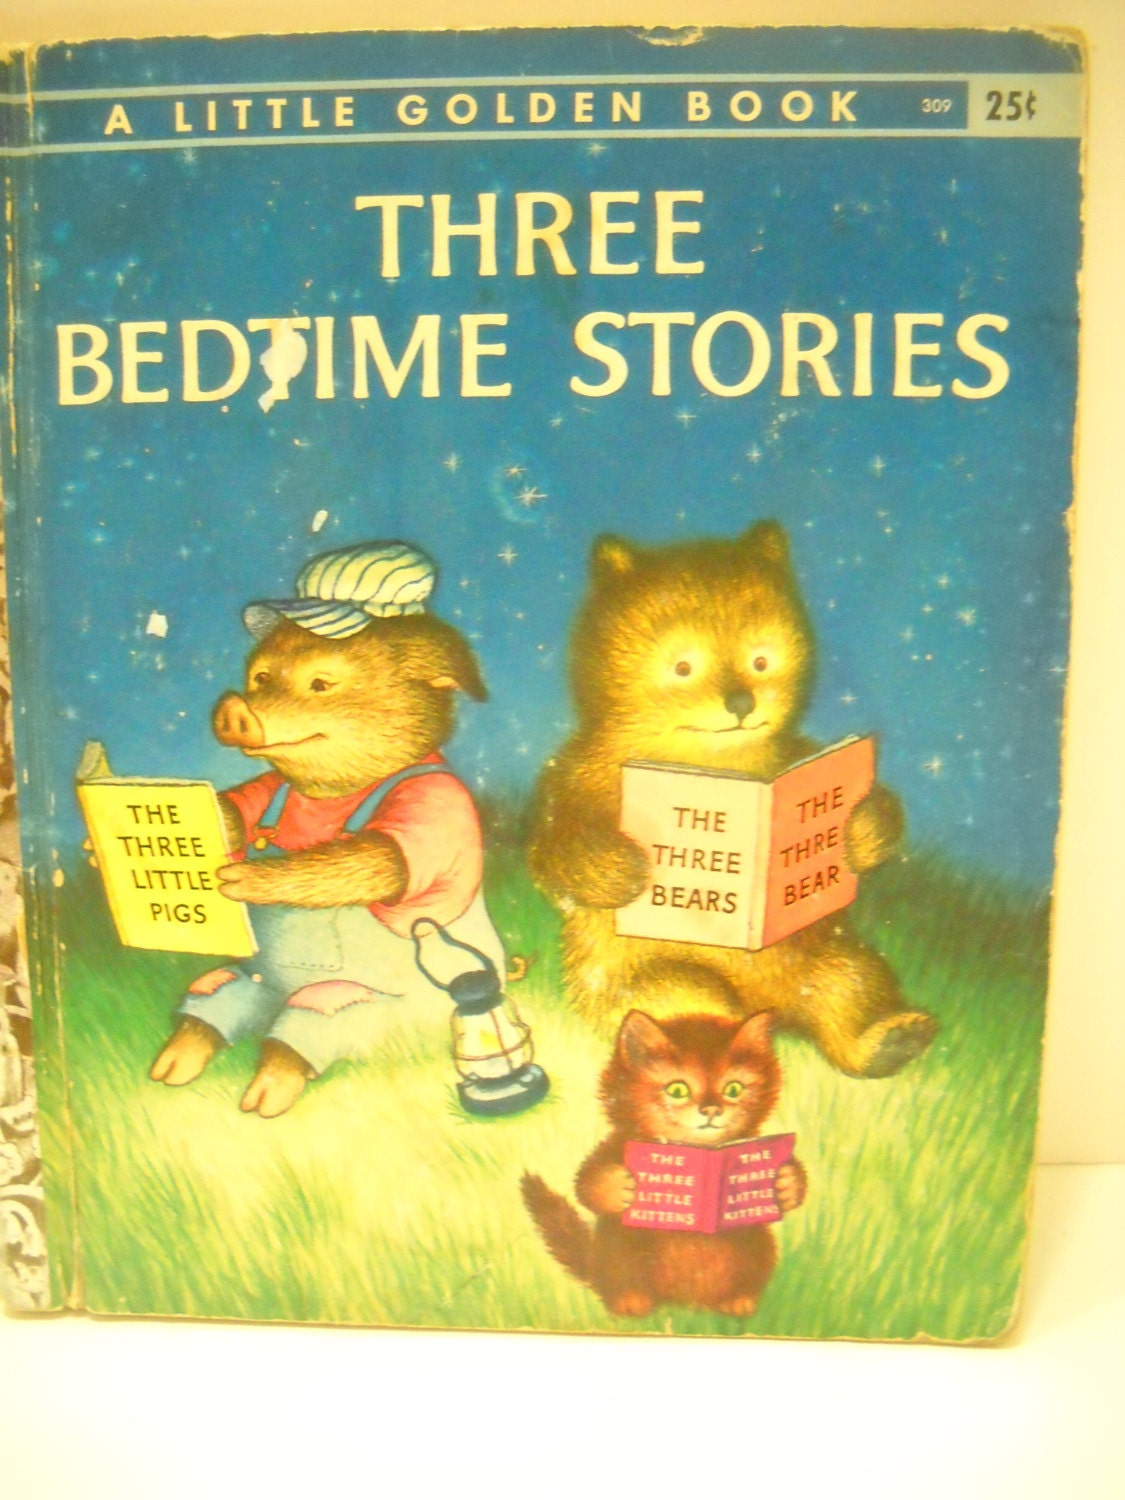 The three little bears bedtime story : Alehouse livermore